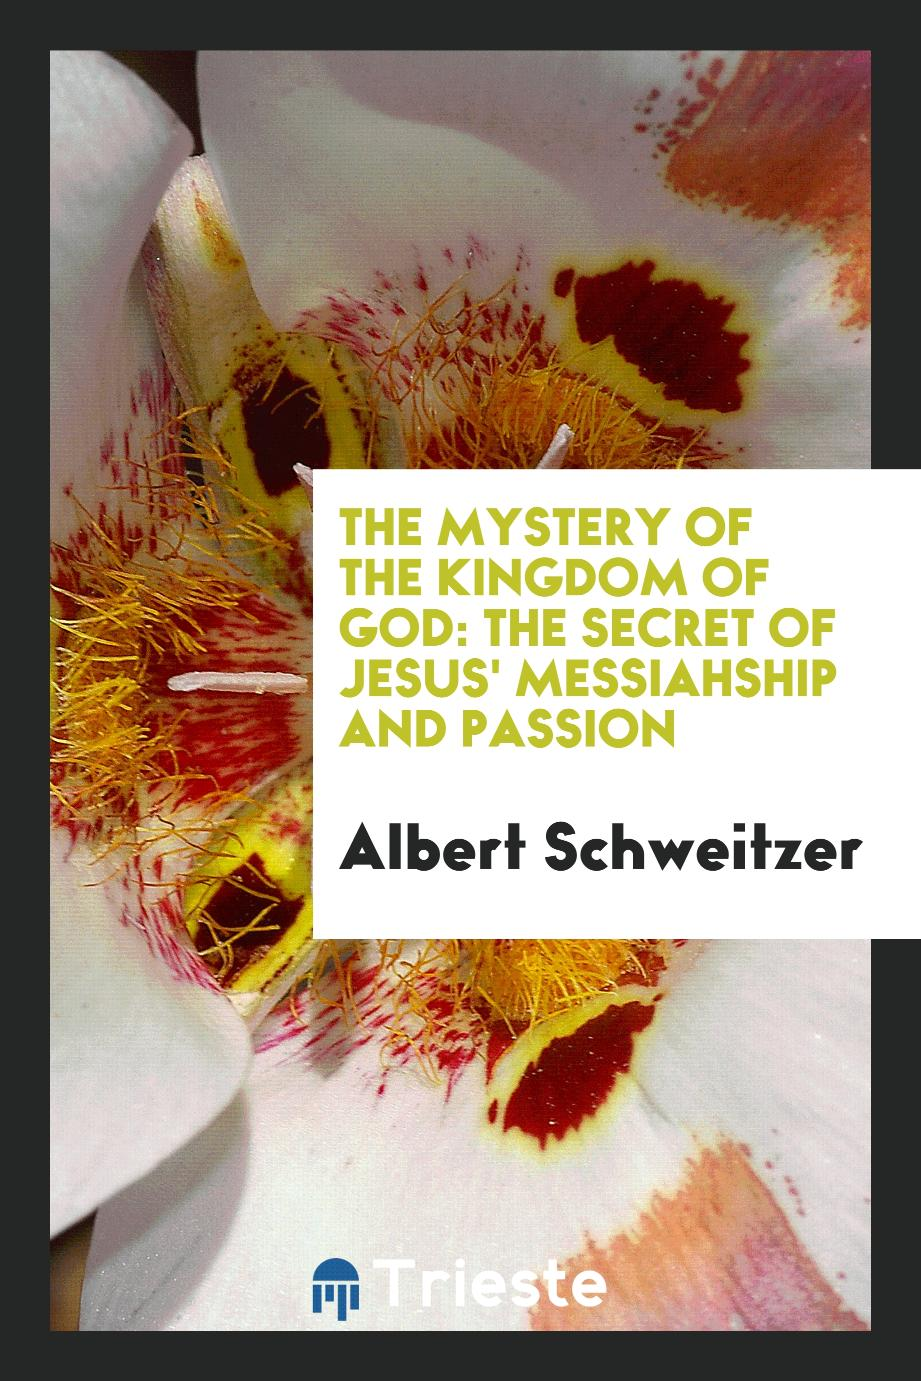 The mystery of the kingdom of God: the secret of Jesus' messiahship and passion